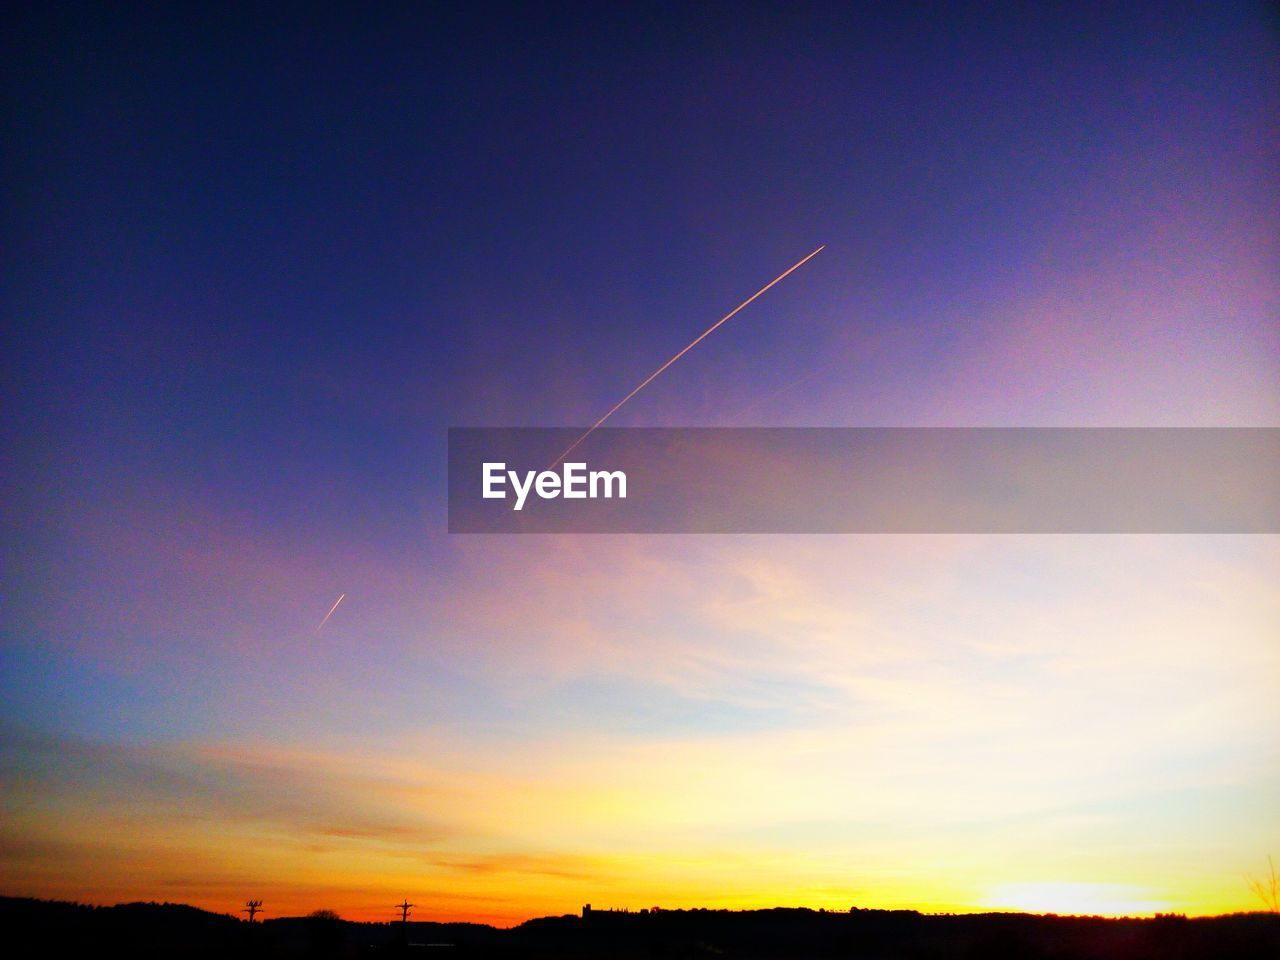 sky, cloud - sky, beauty in nature, sunset, vapor trail, scenics - nature, tranquility, tranquil scene, silhouette, nature, no people, orange color, idyllic, low angle view, landscape, environment, outdoors, blue, non-urban scene, dramatic sky